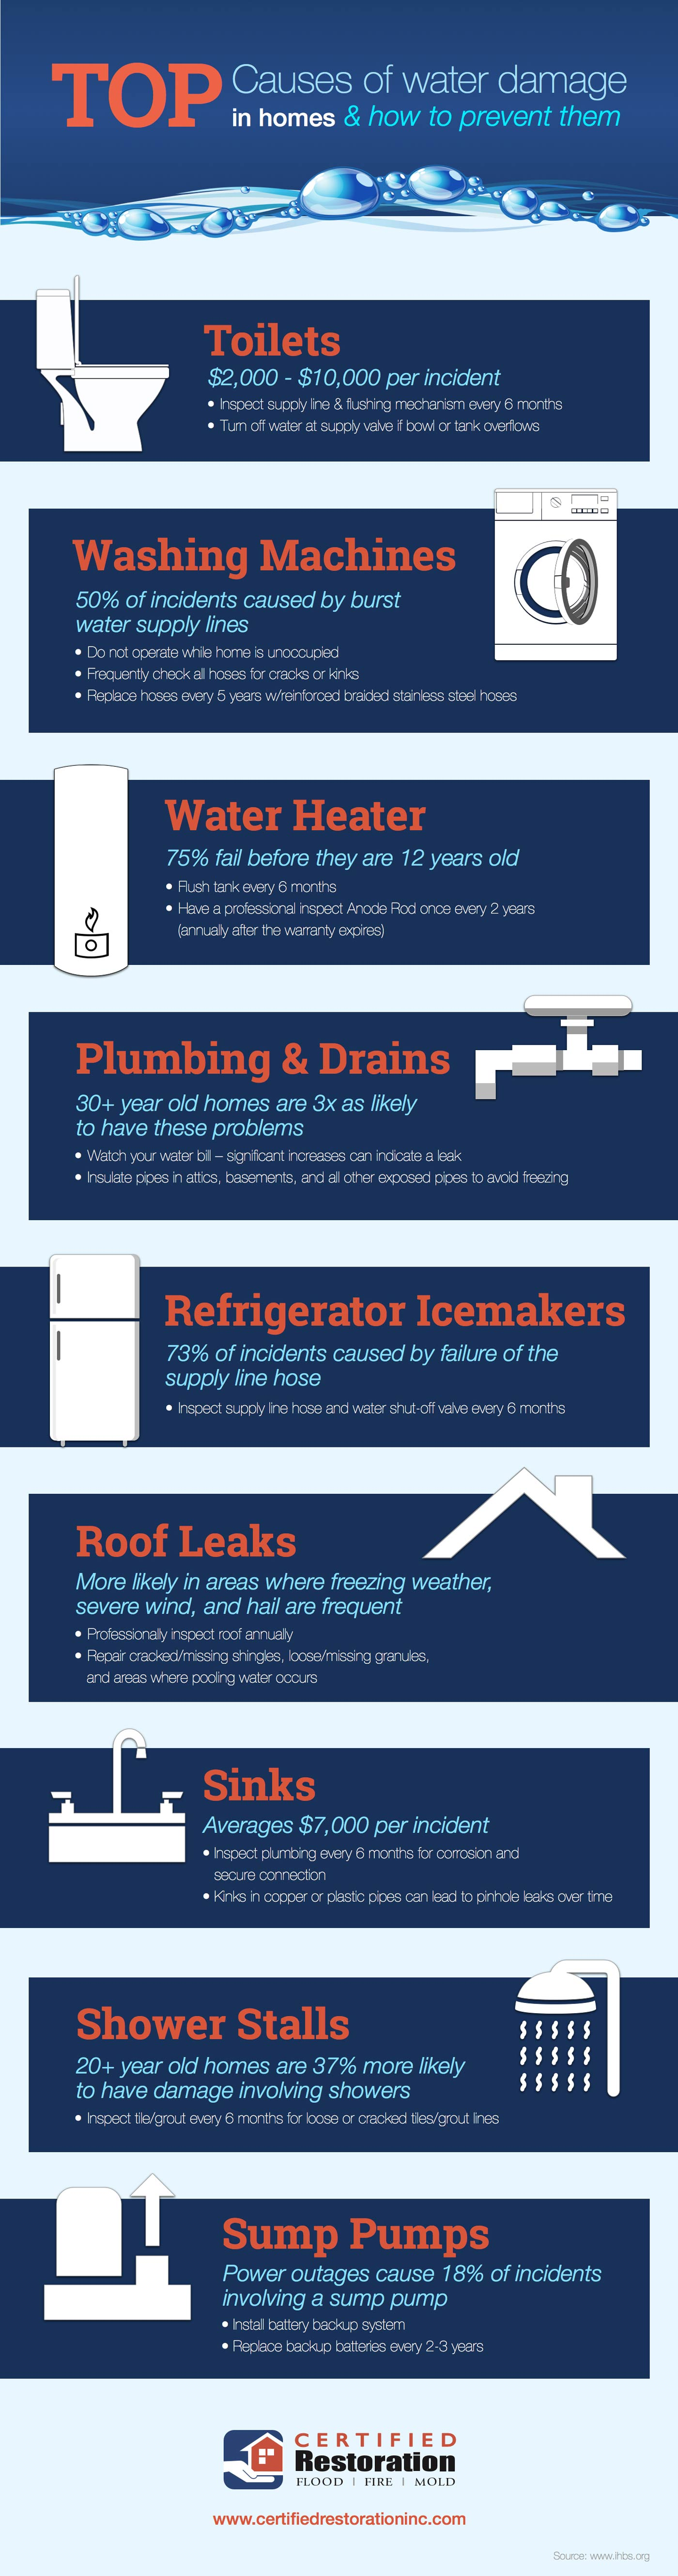 Top causes of water damage and how to prevent them